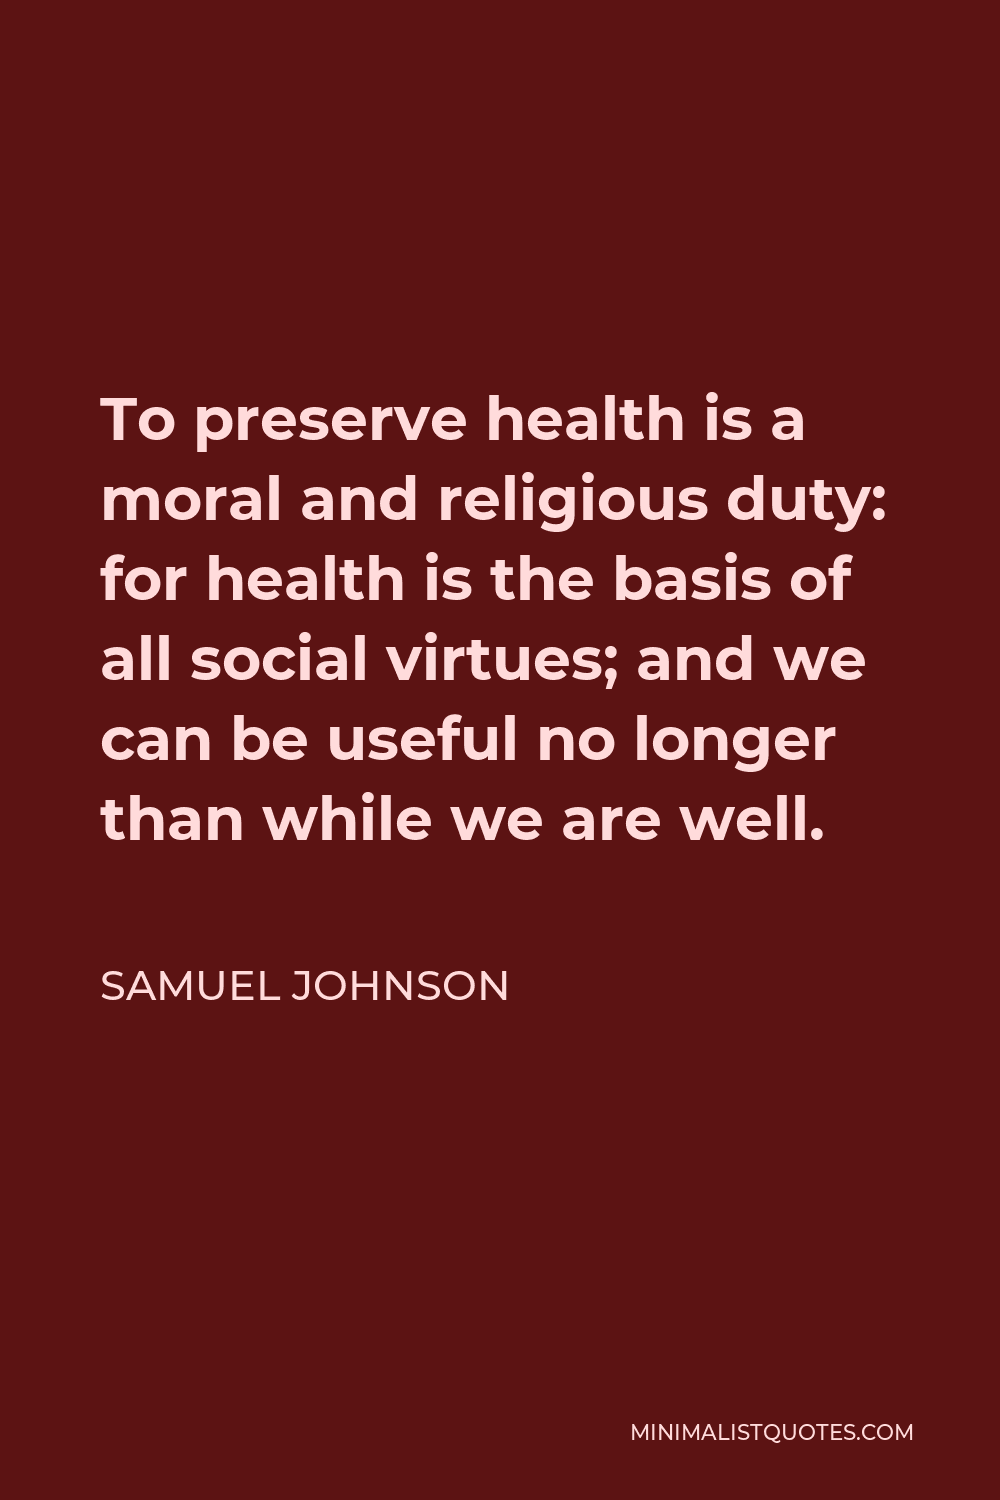 Samuel Johnson Quote - To preserve health is a moral and religious duty: for health is the basis of all social virtues; and we can be useful no longer than while we are well.